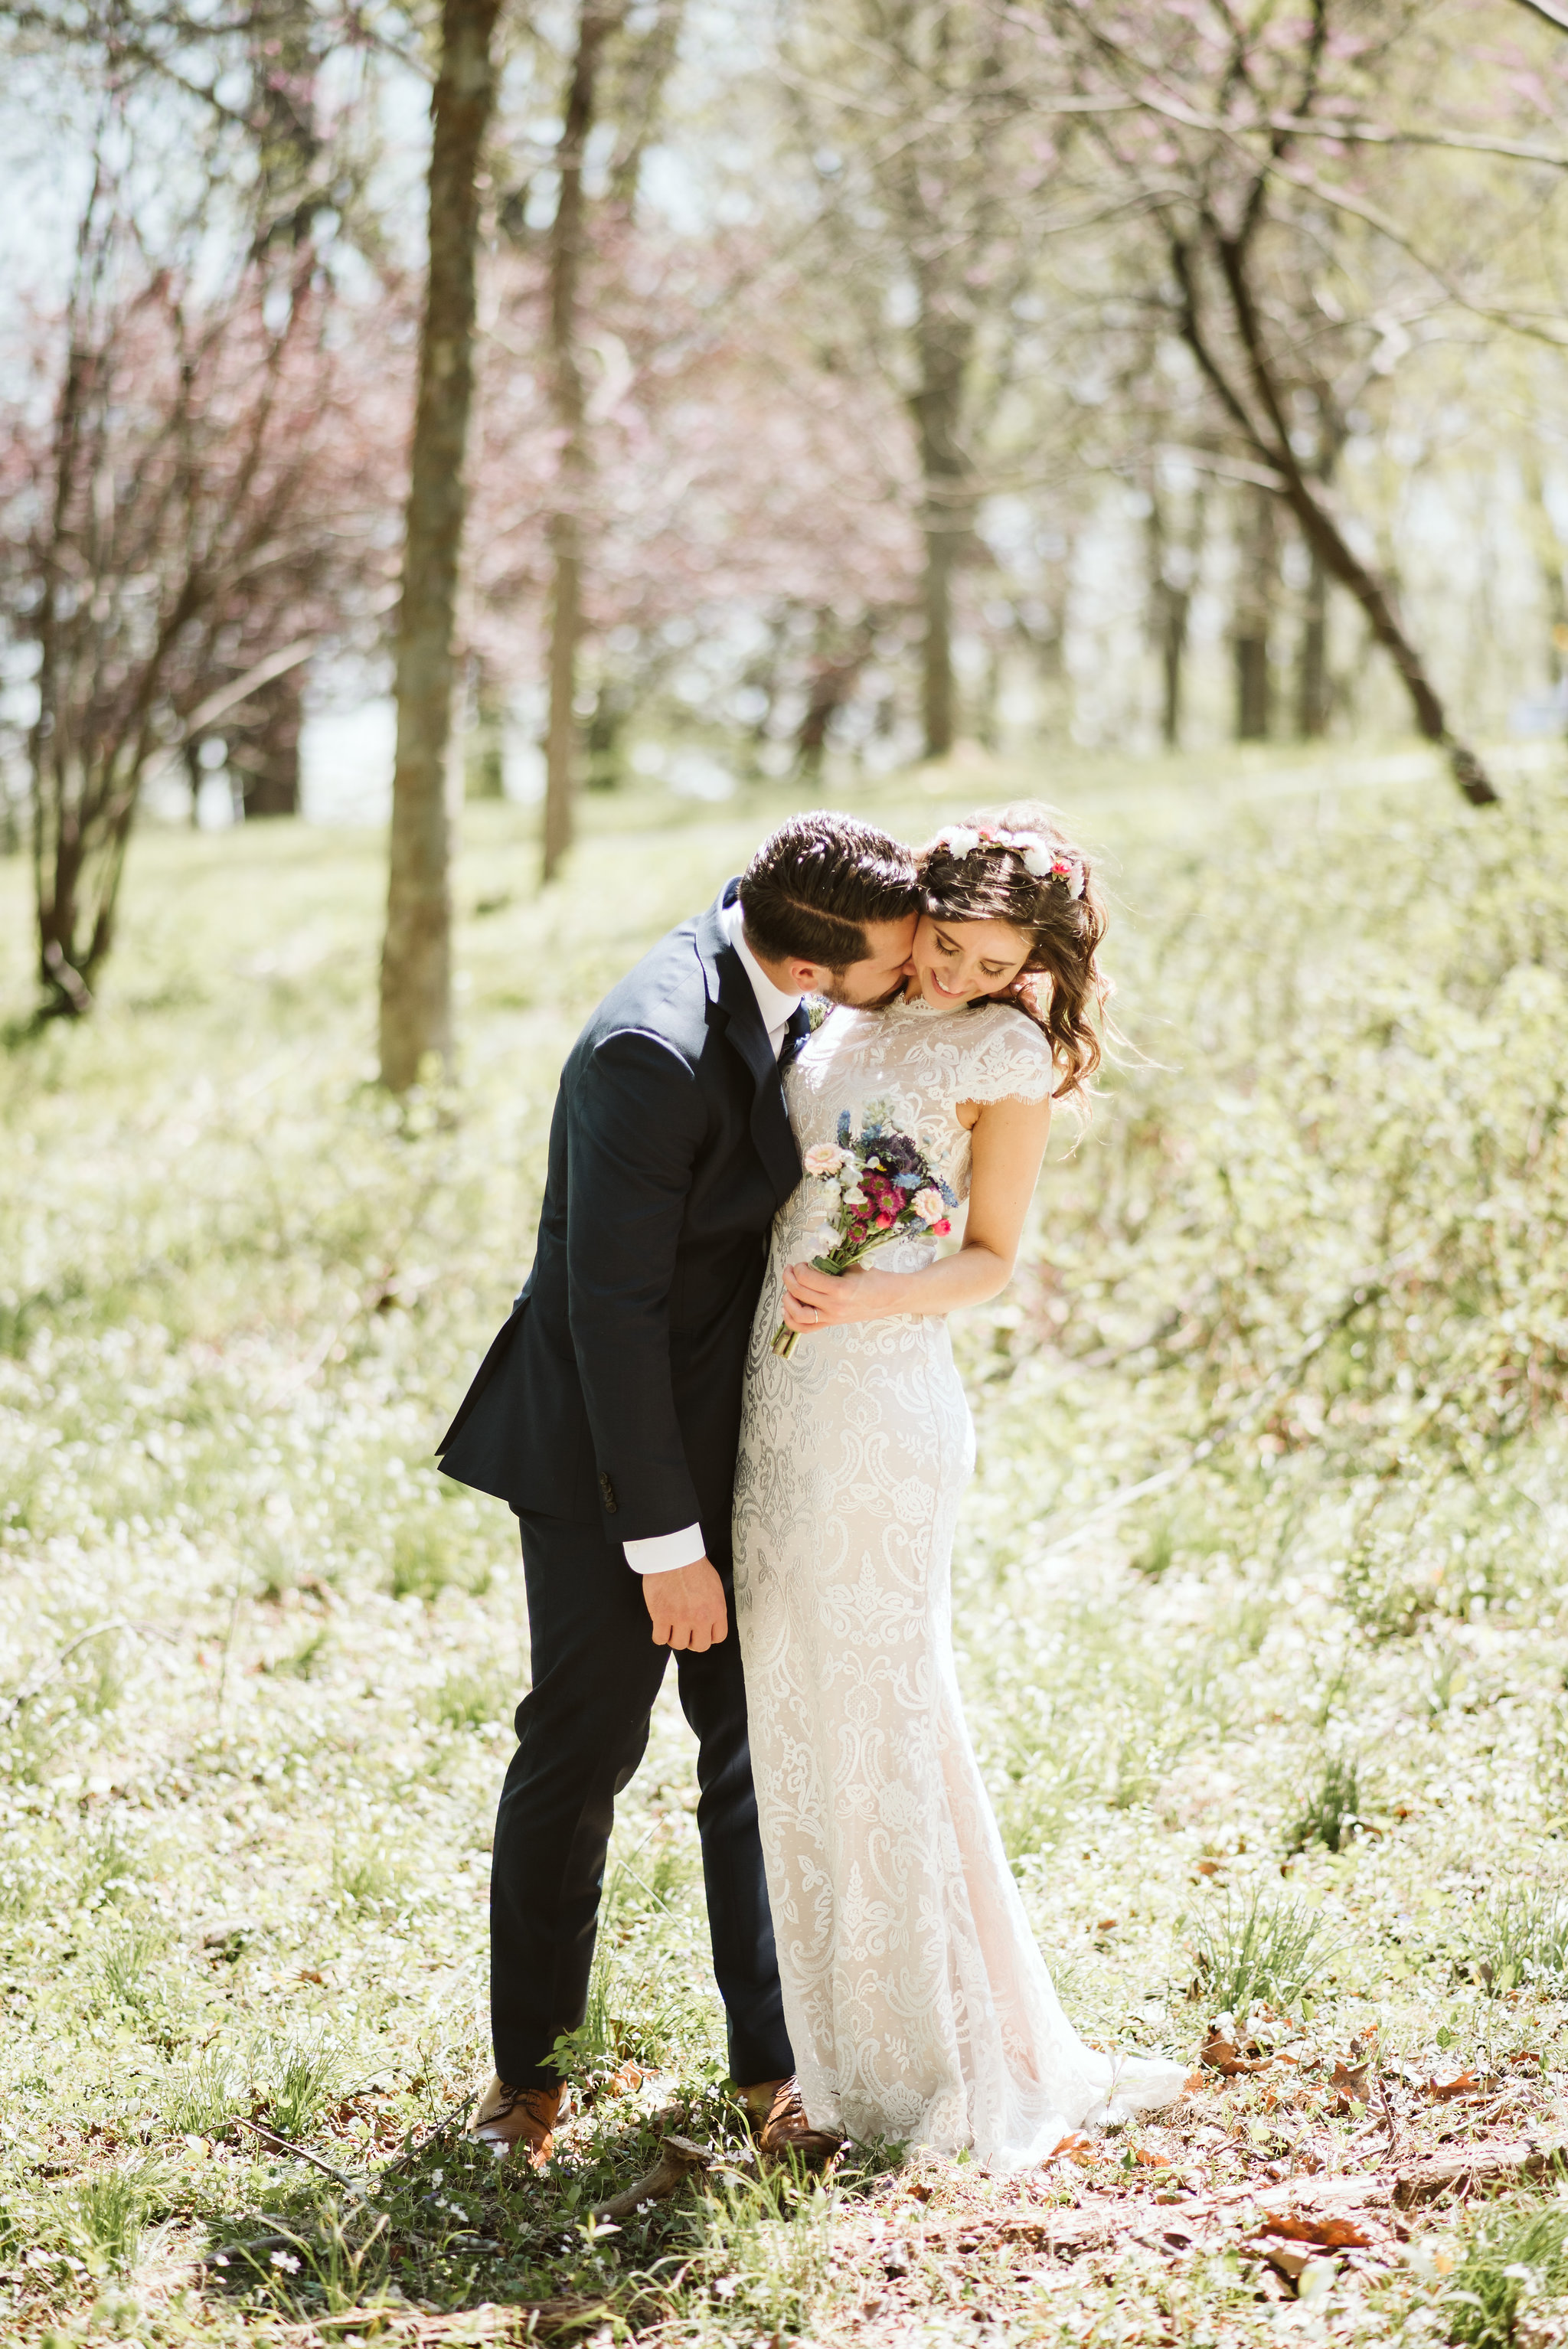 Spring Outdoor Wedding, Park, Baltimore Wedding Photographer, DIY, Classic, Upcycled, Garden Party, Romantic, Sweet Photo of Bride and Groom Being Playful